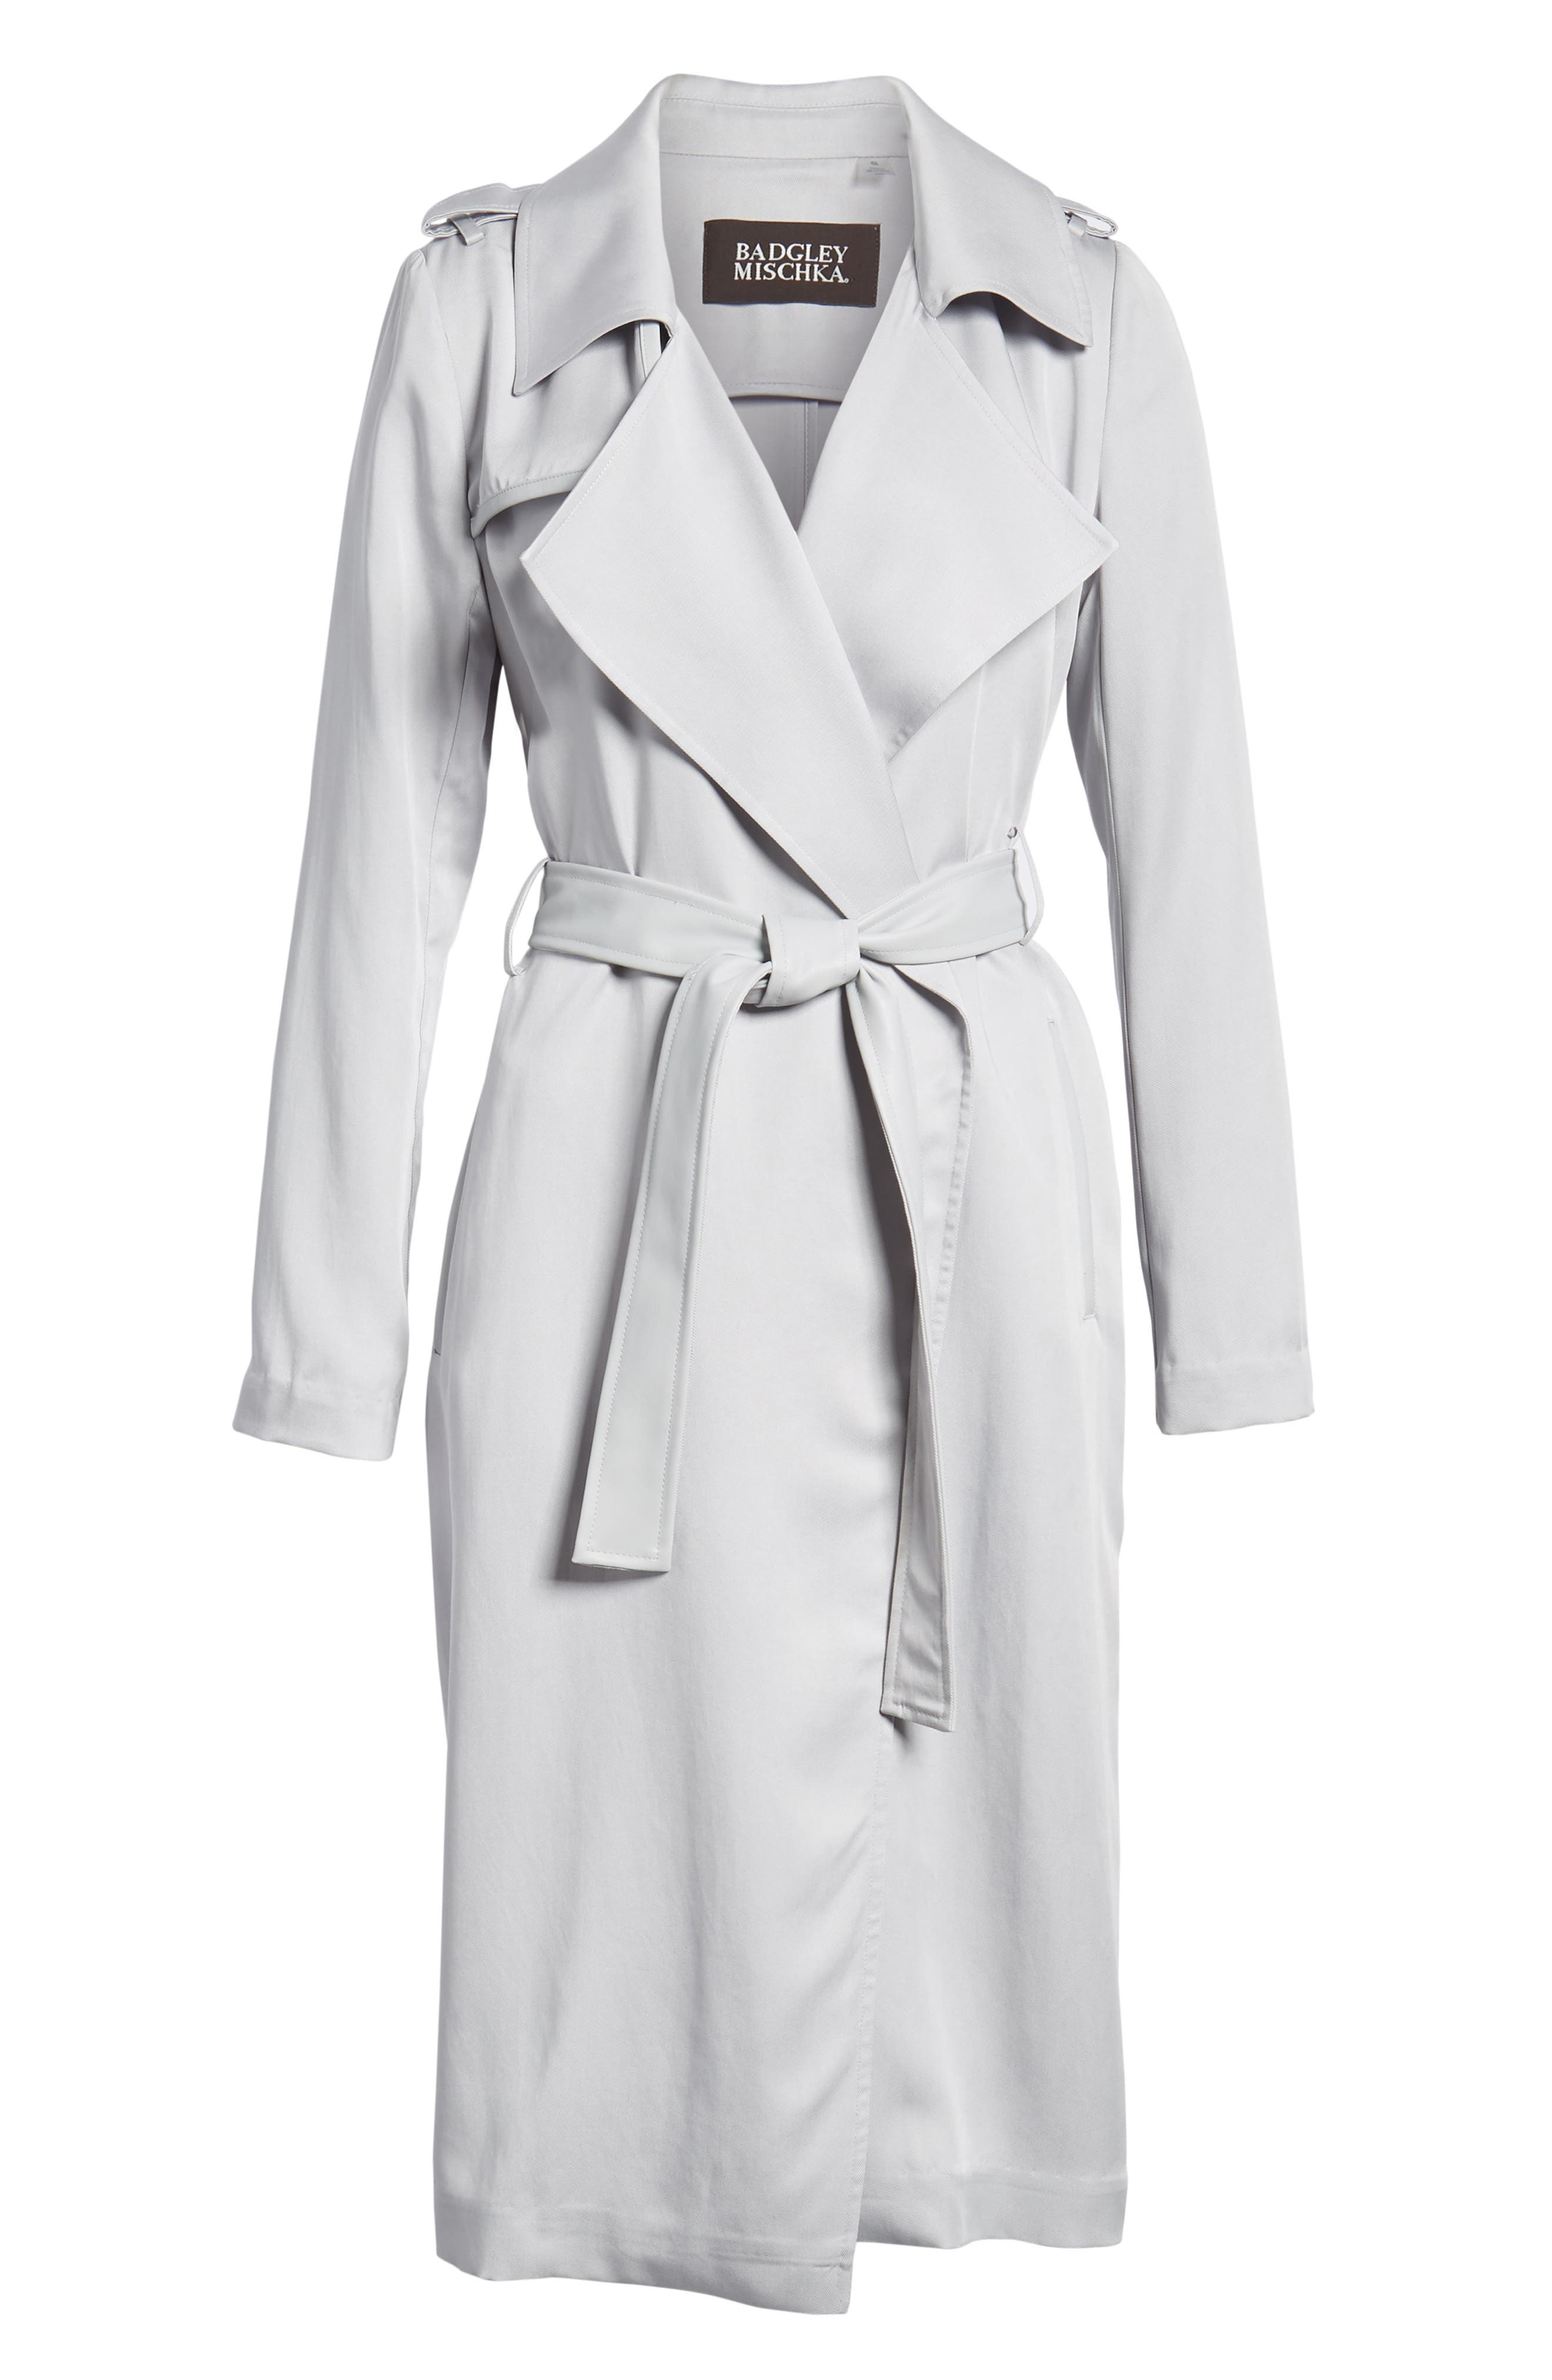 Badgley Mischka Faux Leather Trim Long Trench Coat,                             Alternate thumbnail 6, color,                             020